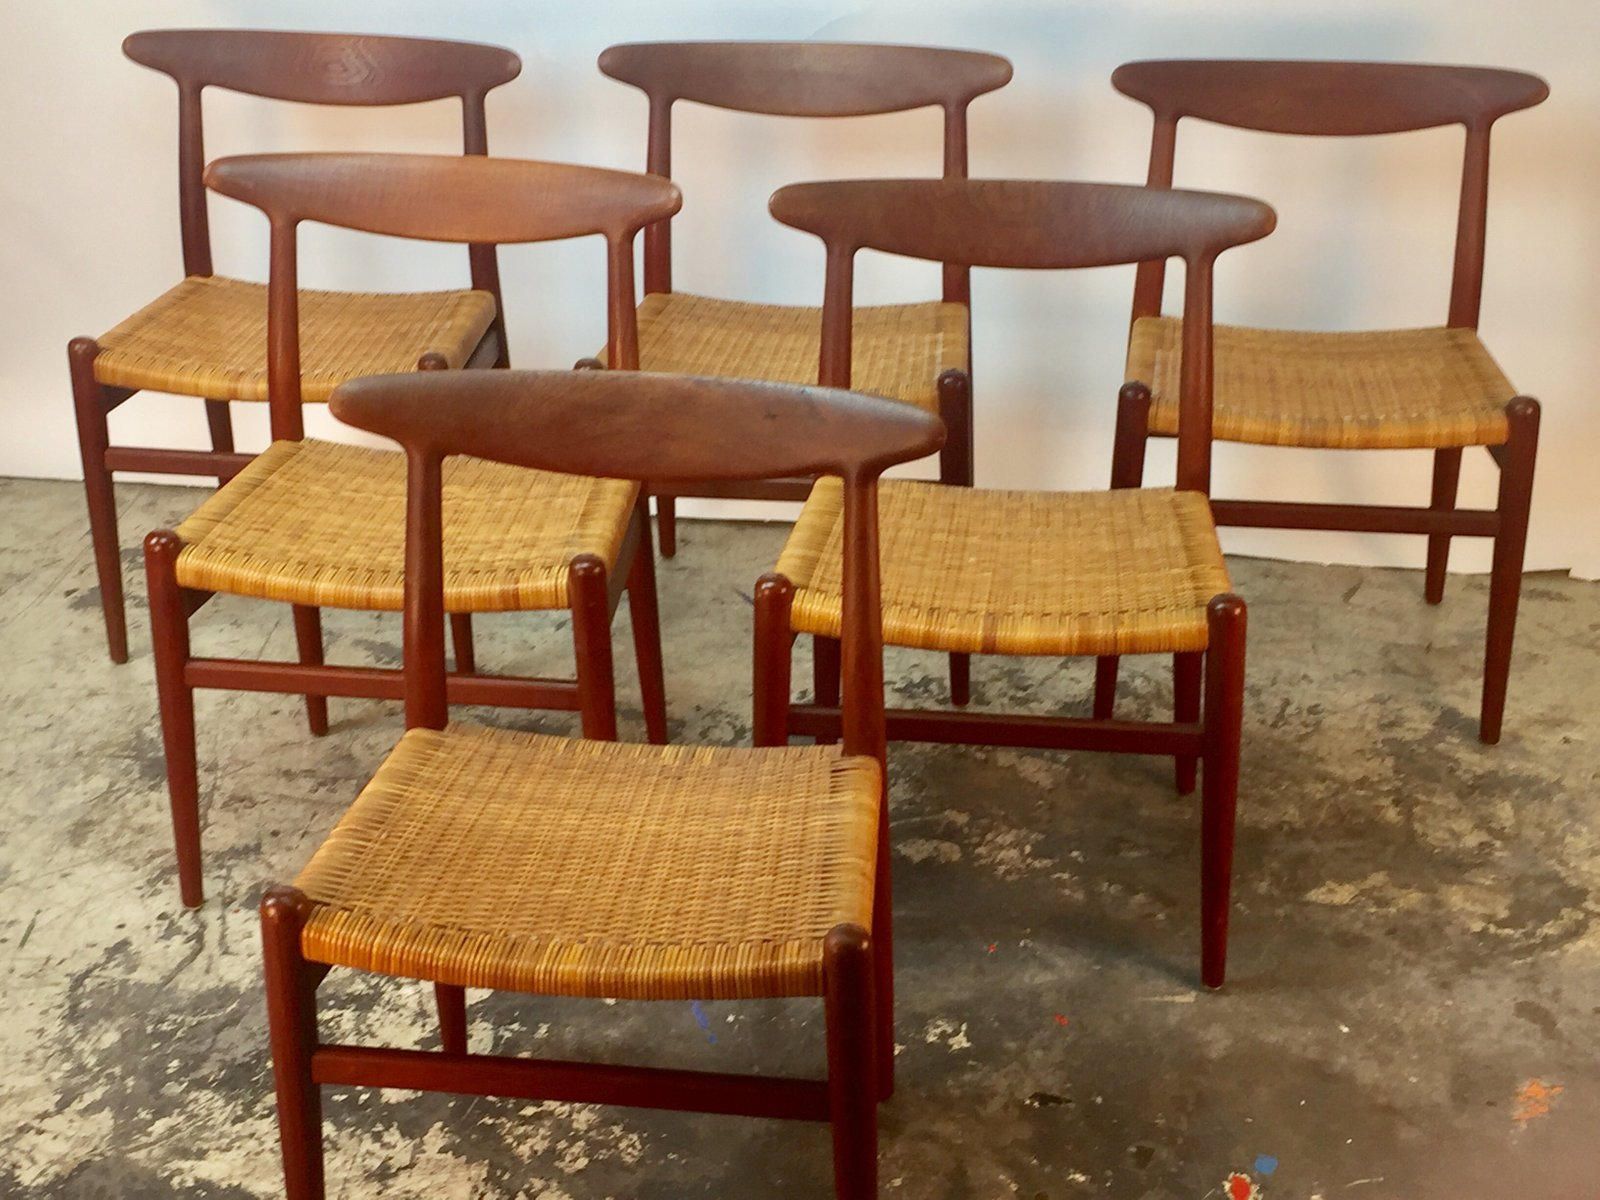 W2 teak cane dining chairs by hans j wegner for c m madsen 1950s set of 6